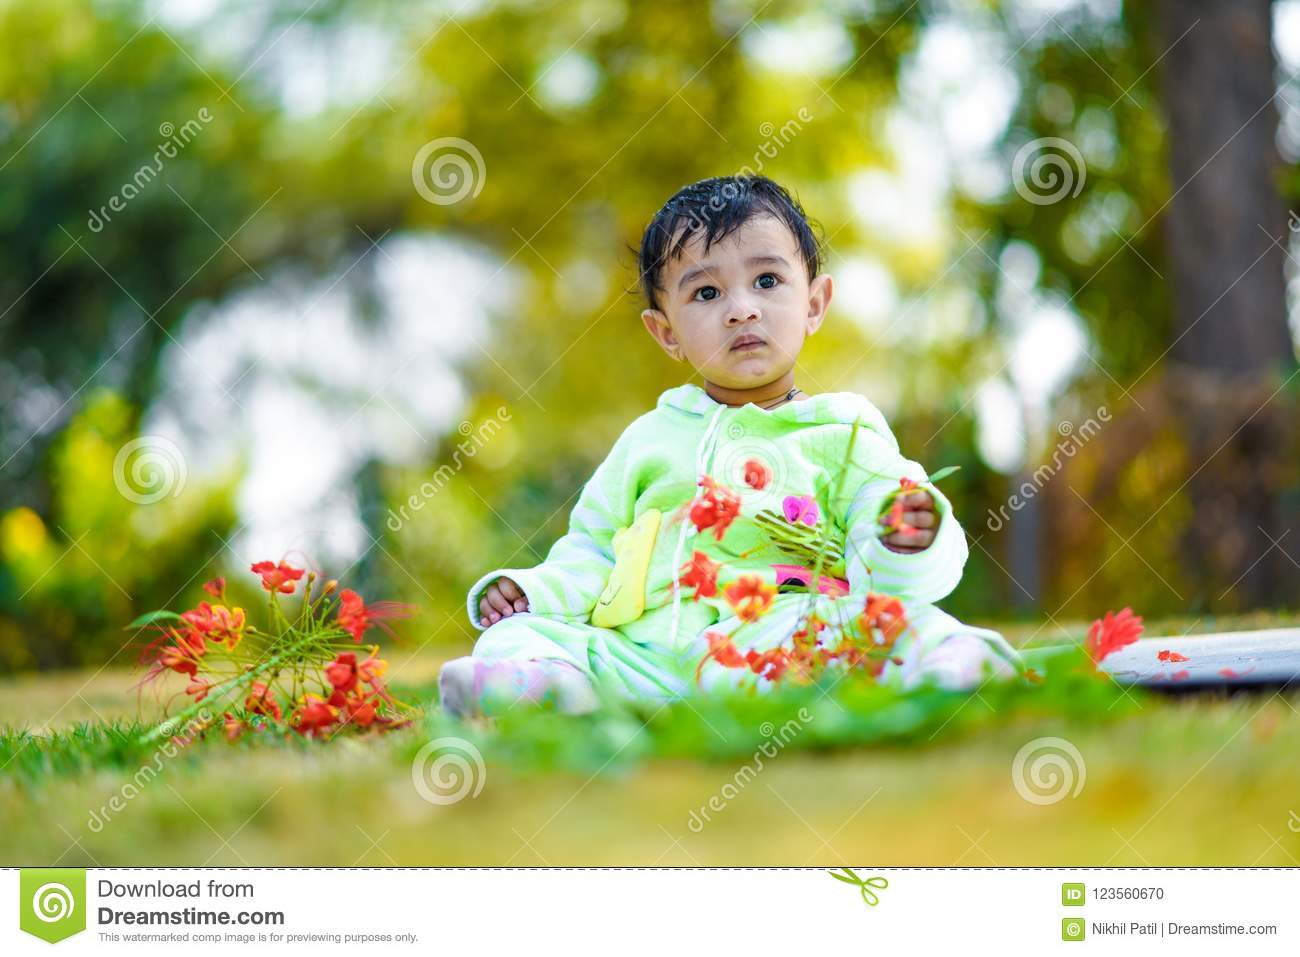 Cute Indian Baby Boy Playing At Garden Stock Photo - Image of